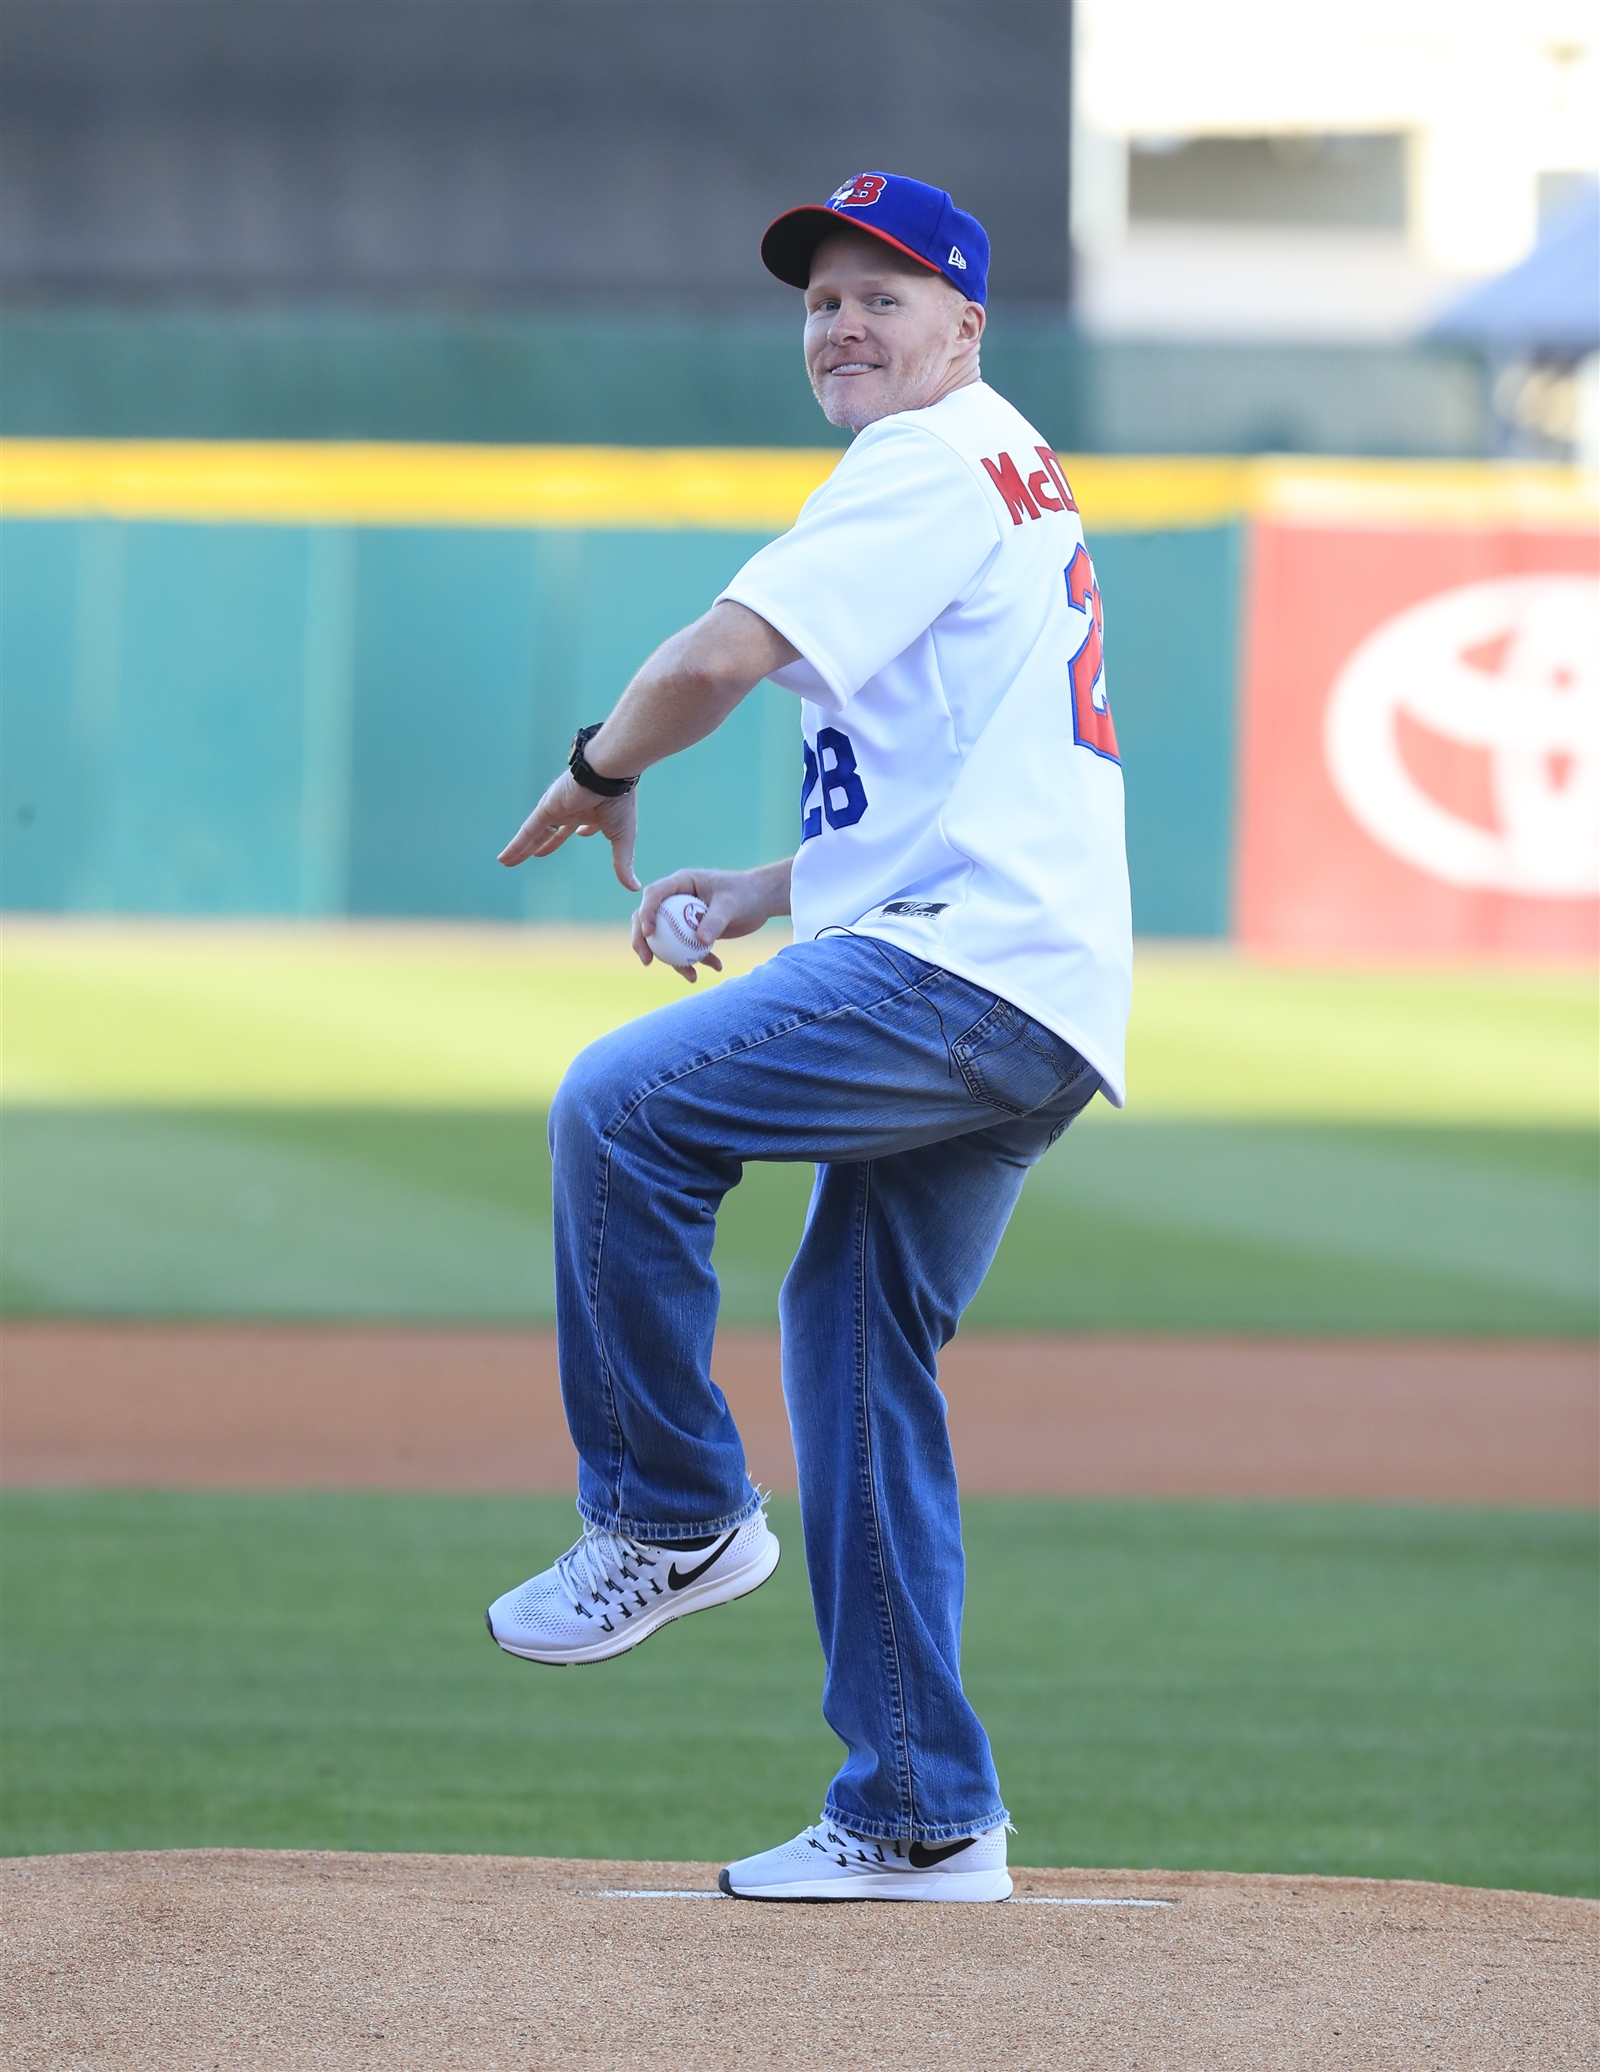 Buffalo Bills coach Sean McDermott throws out the ceremonial first pitch prior to the Pawtucket Red Sox and Buffalo Bisons game at Coca-Cola Field on Friday, May 19, 2017.